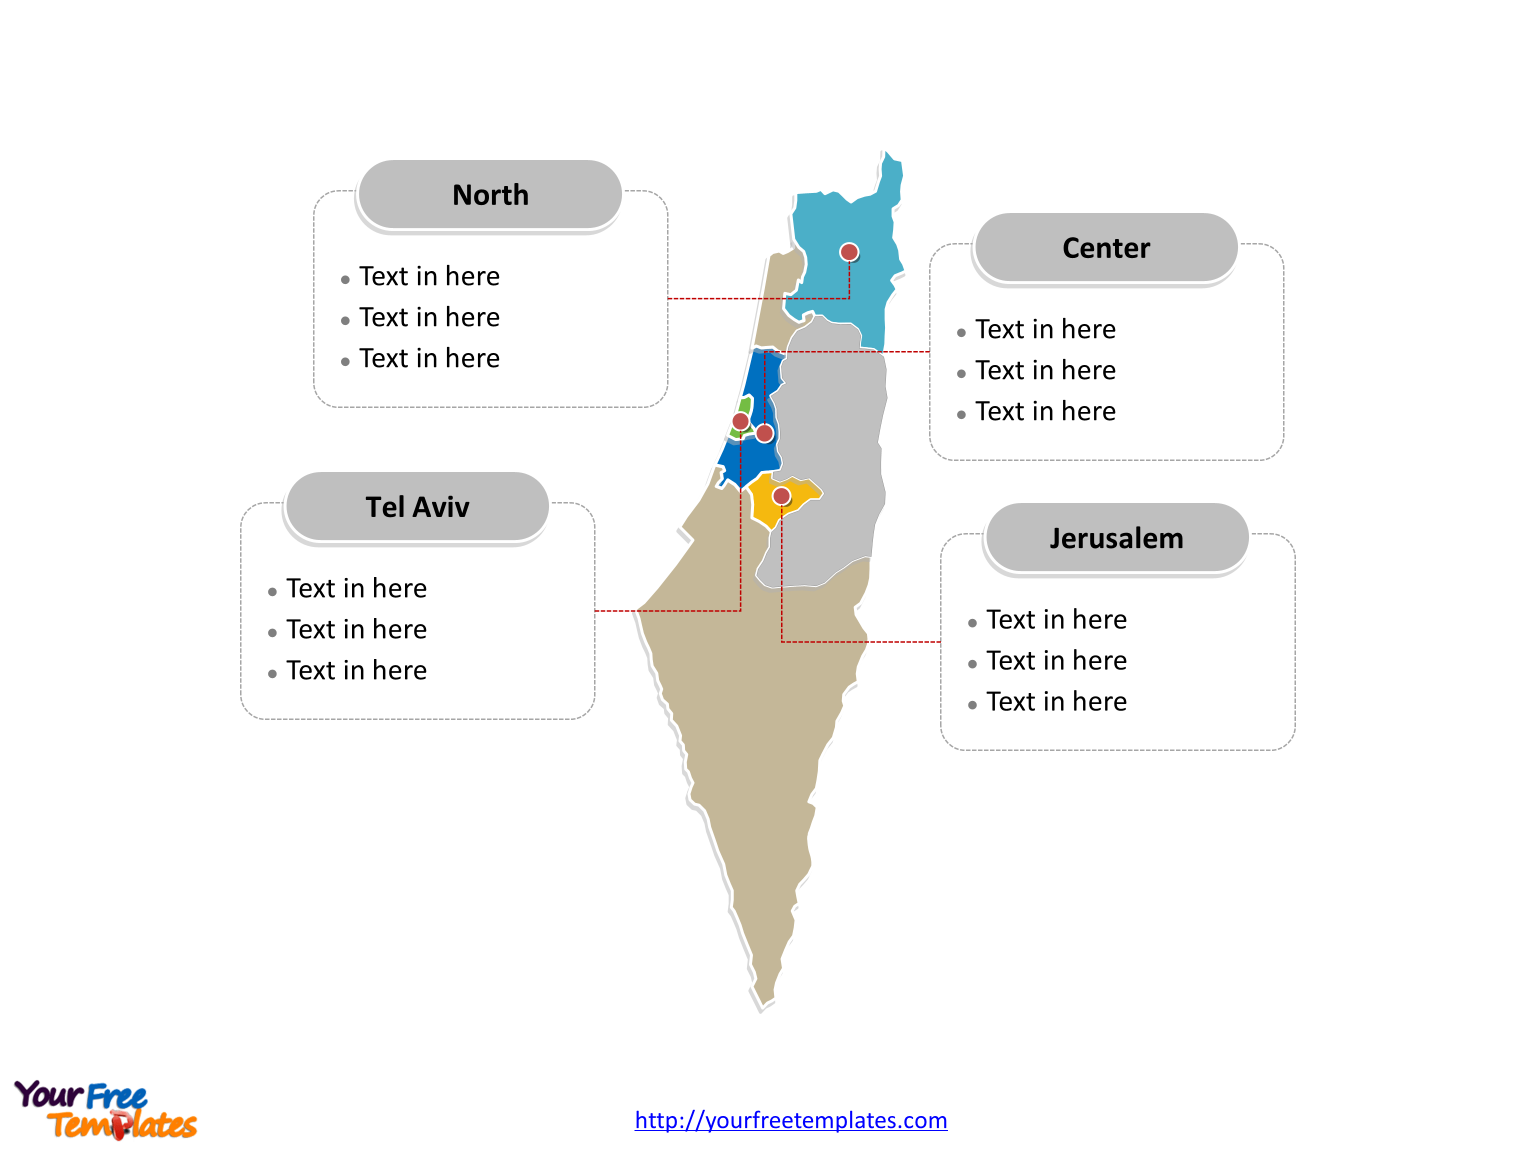 Israel Political map labeled with major districts